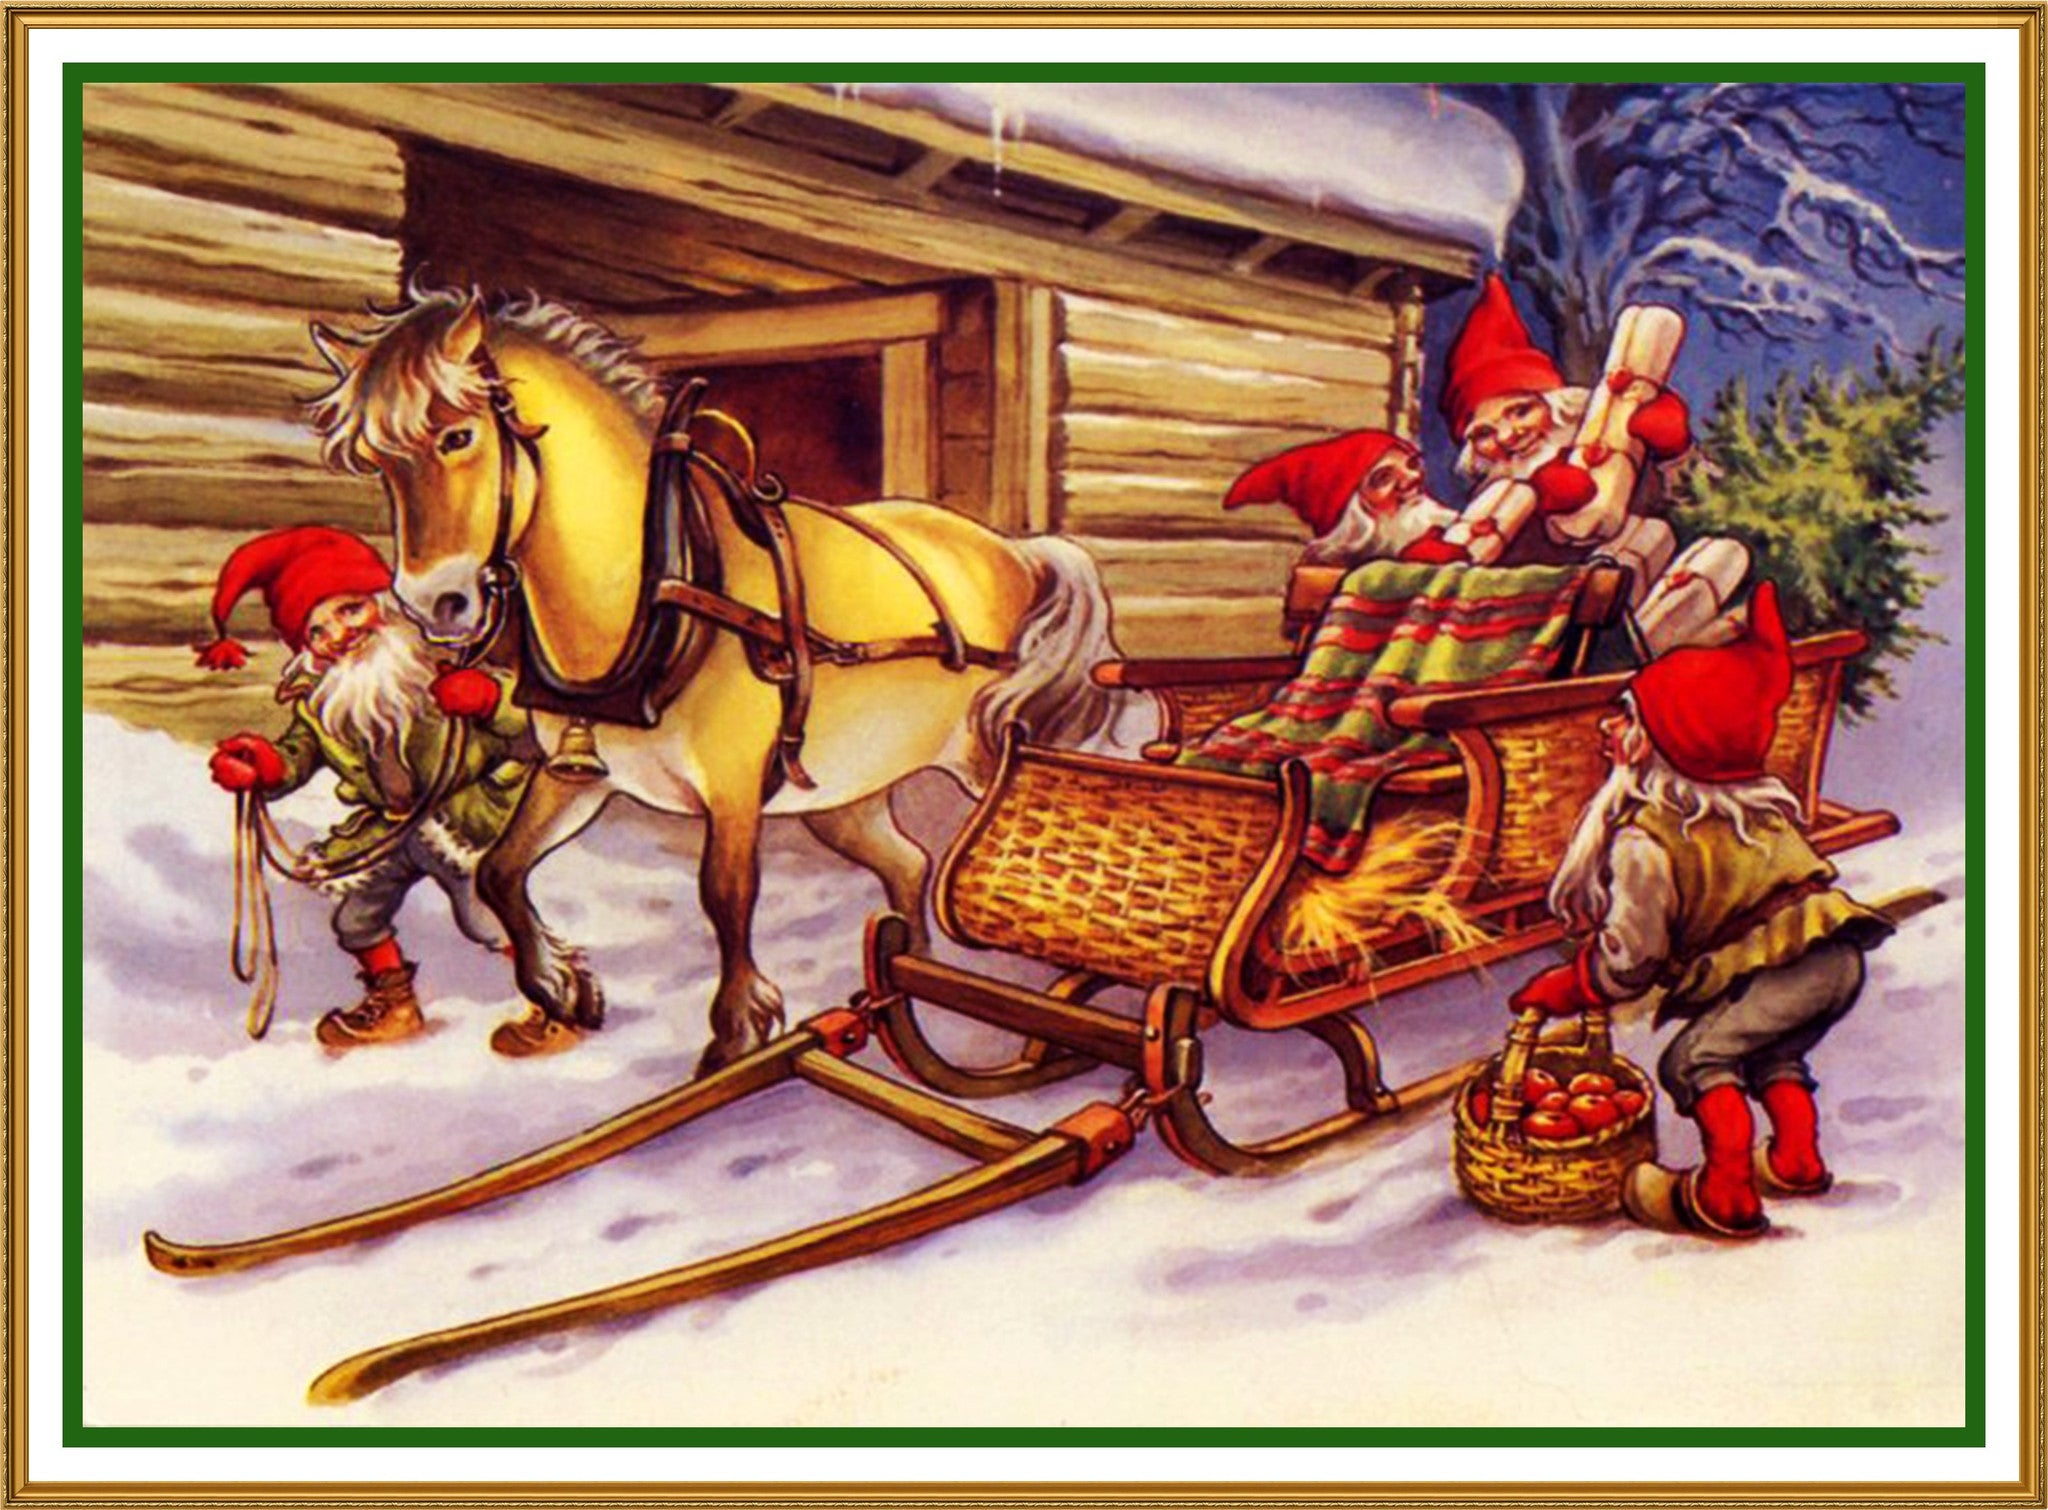 Elves Pack Christmas Horse Drawn Sleigh Jenny Nystrom Holiday Christma Orenco Originals Llc